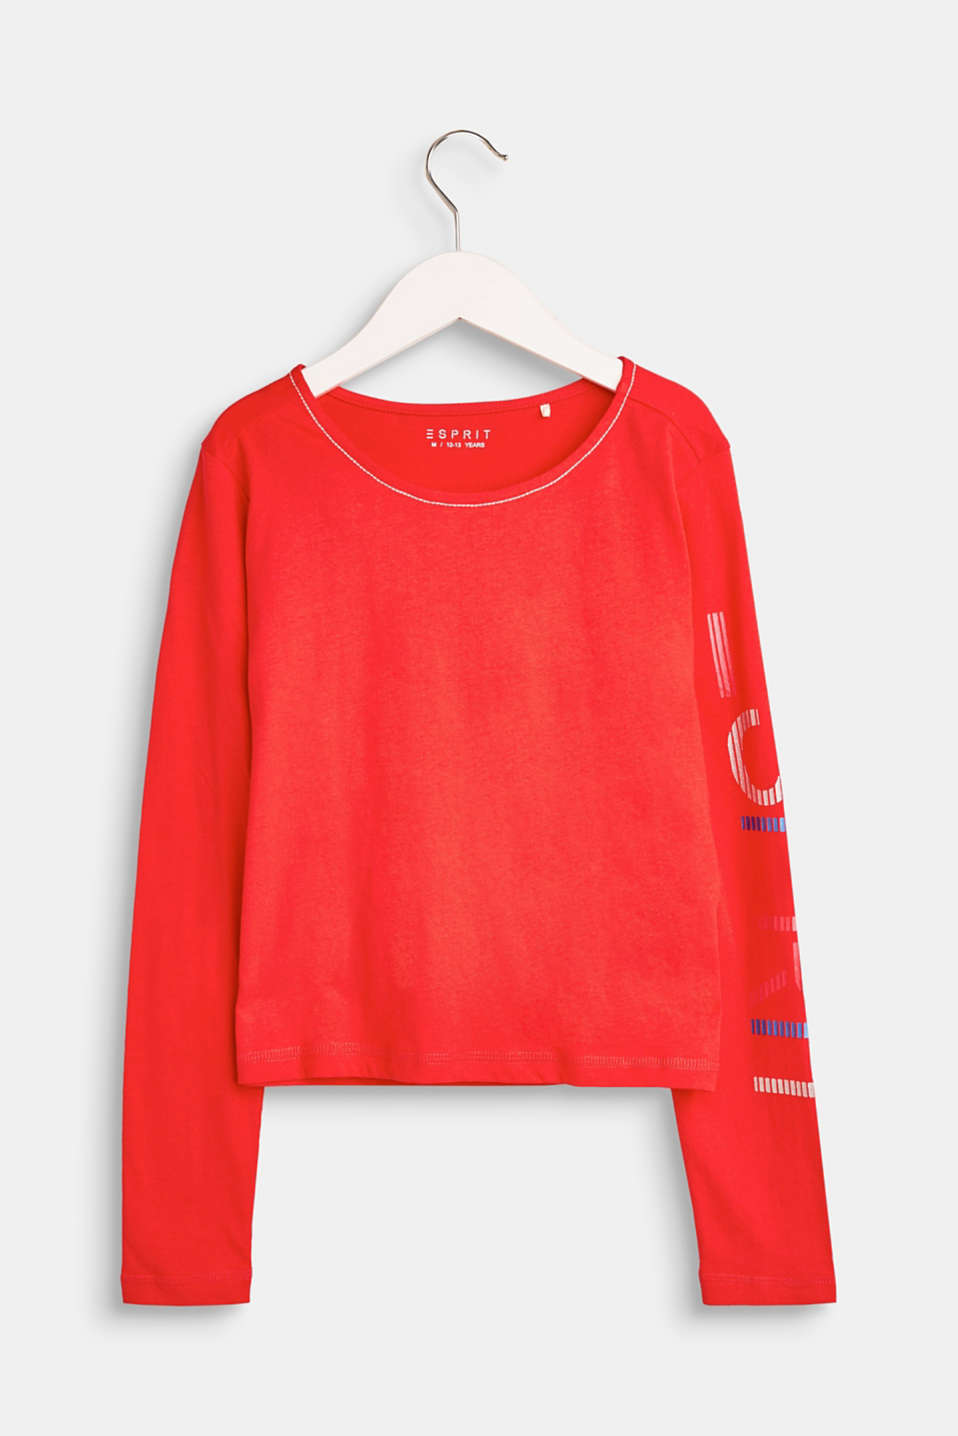 Esprit - Long sleeve top with logo print, 100% cotton